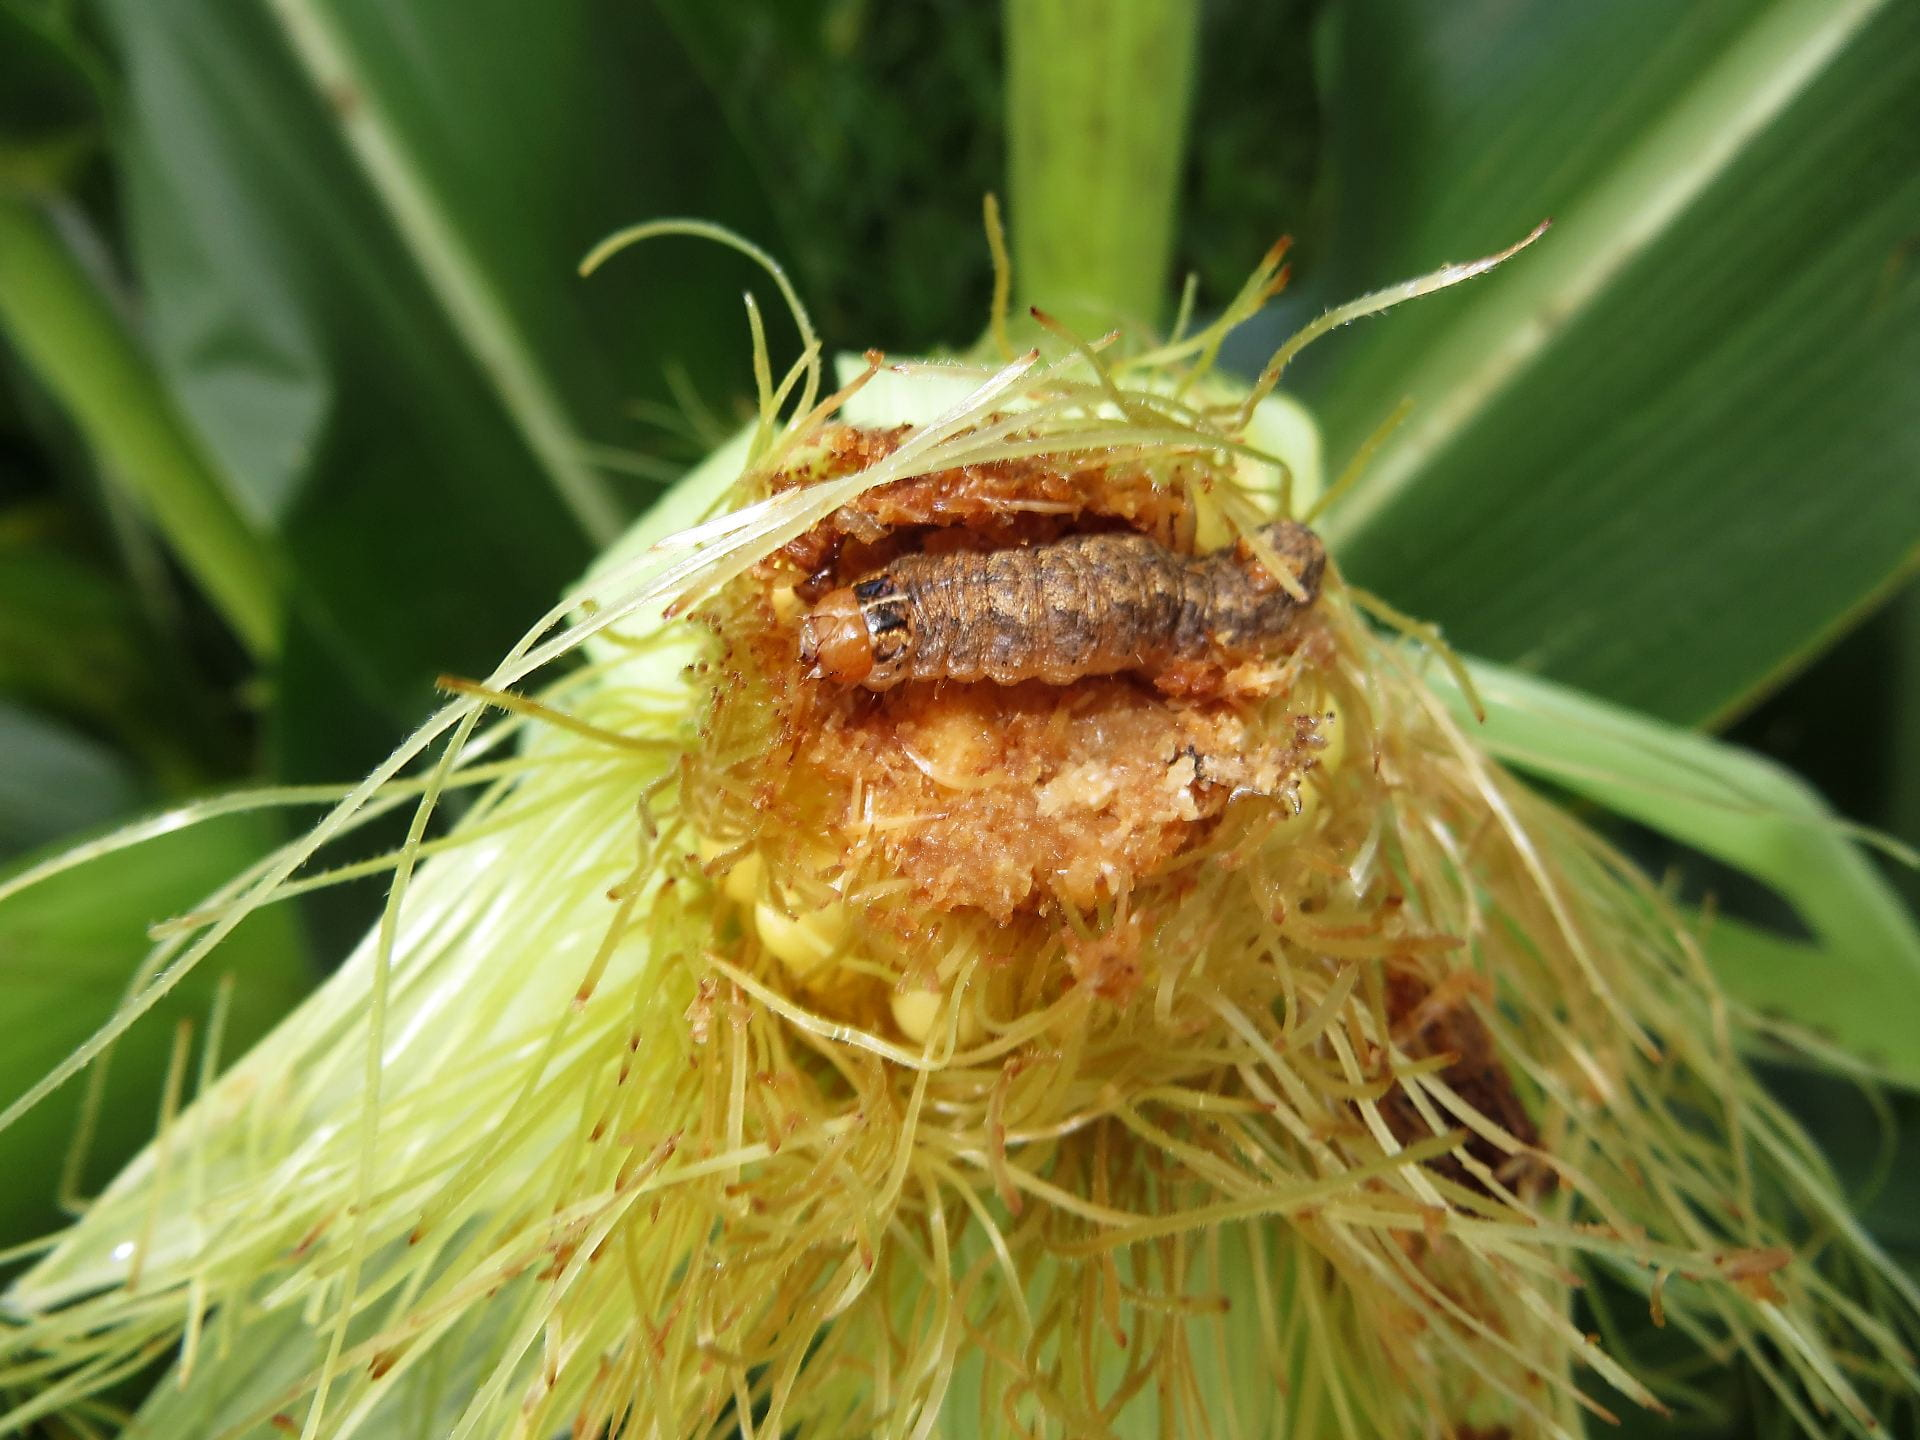 Photo shows a western bean cutworm larva in the tip of a corn cob.